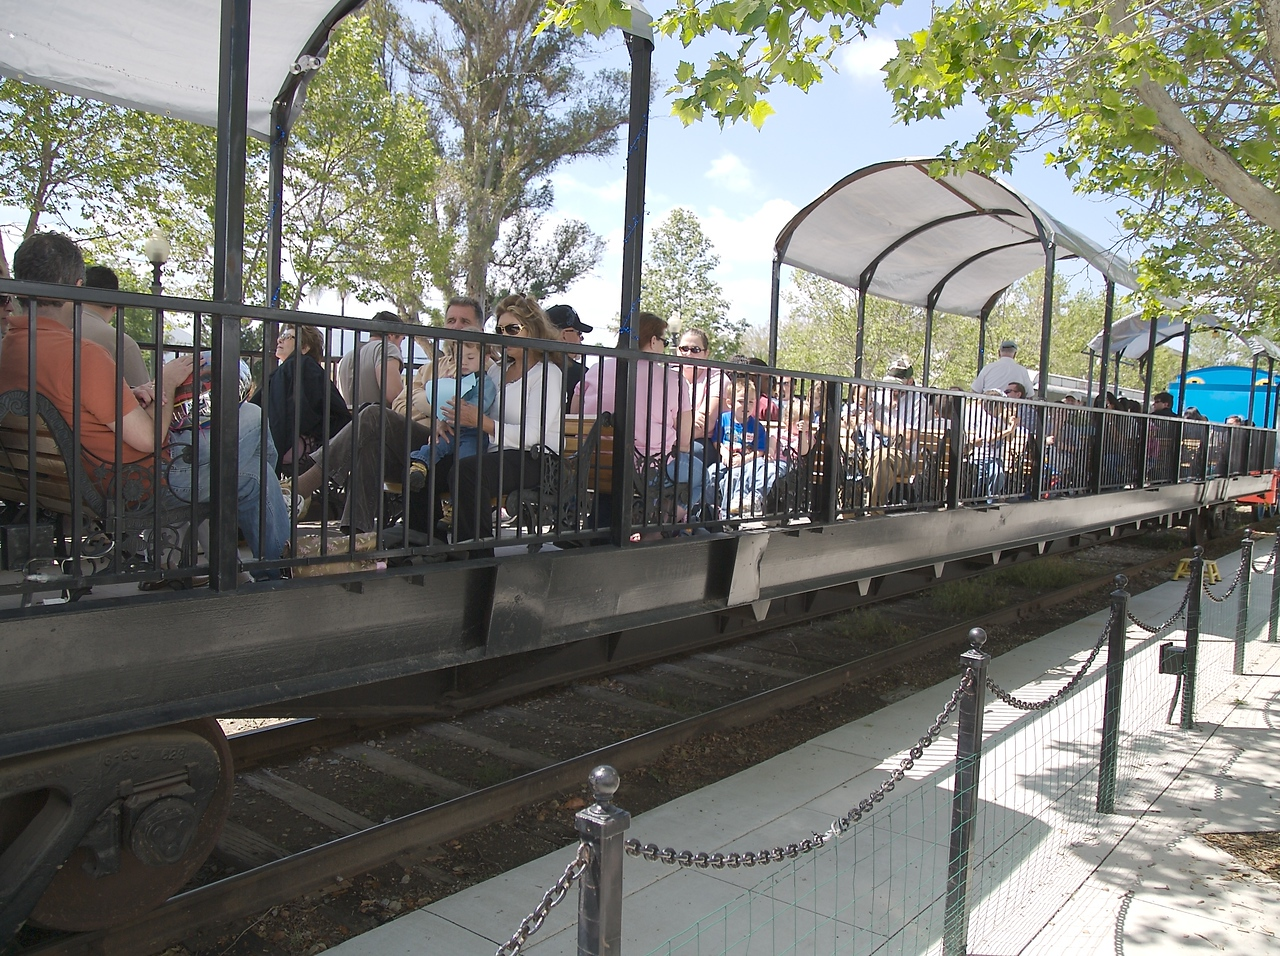 Here are all the people waitng around for their time to ride the train.